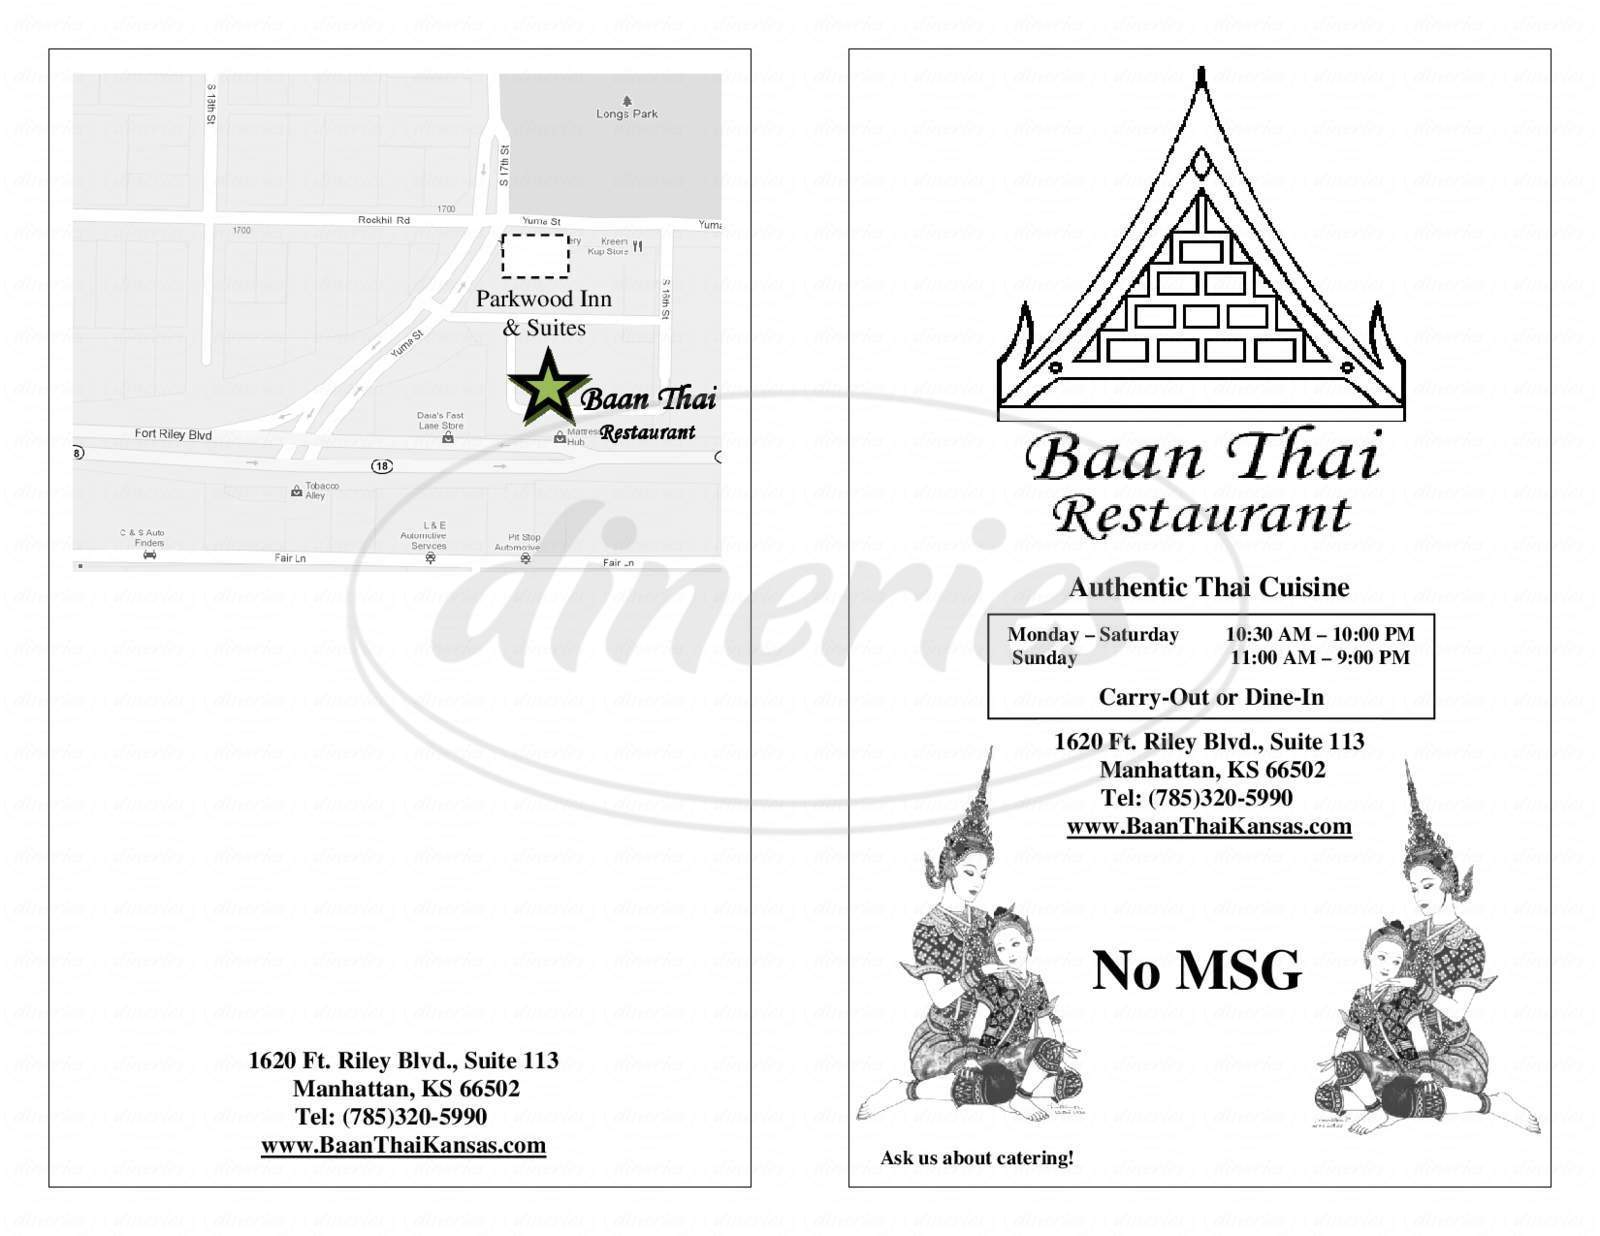 menu for Baan Thai Restraunt